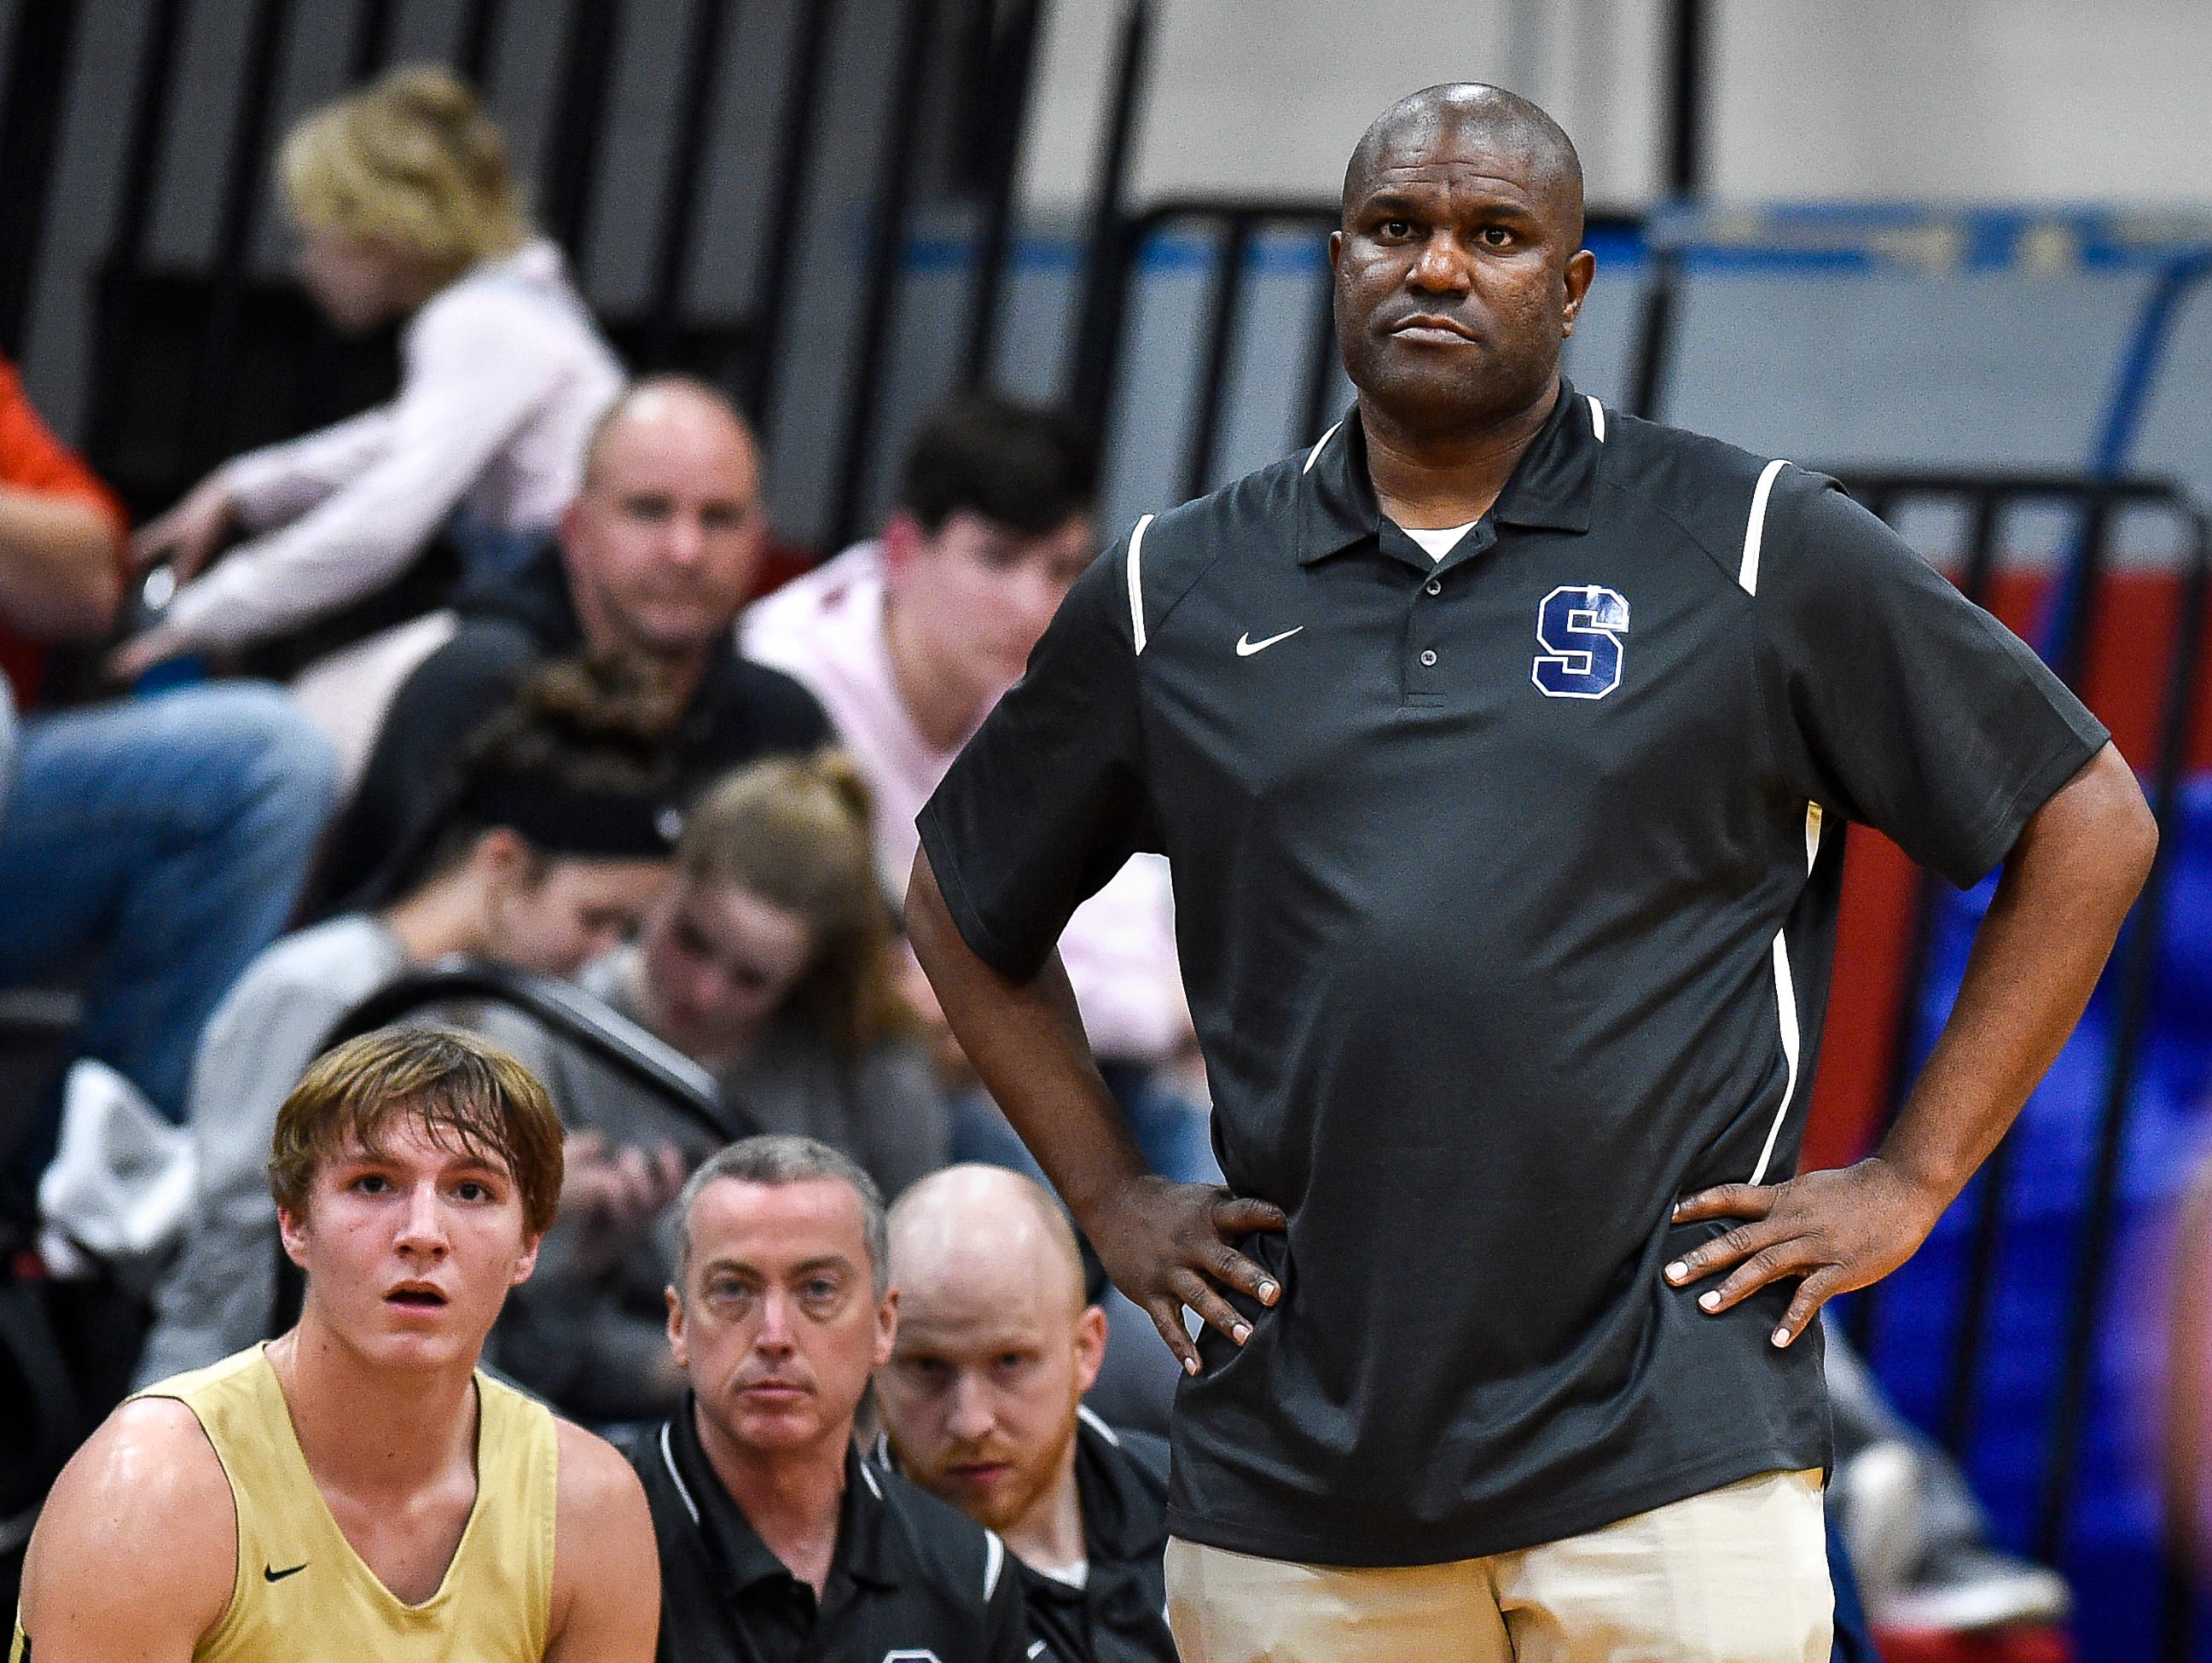 Sycamore's head coach Toby Miles watches his team face East Nashville during the first half at East Nashville Magnet High School in Nashville, Tenn., Friday, Feb. 1, 2019.